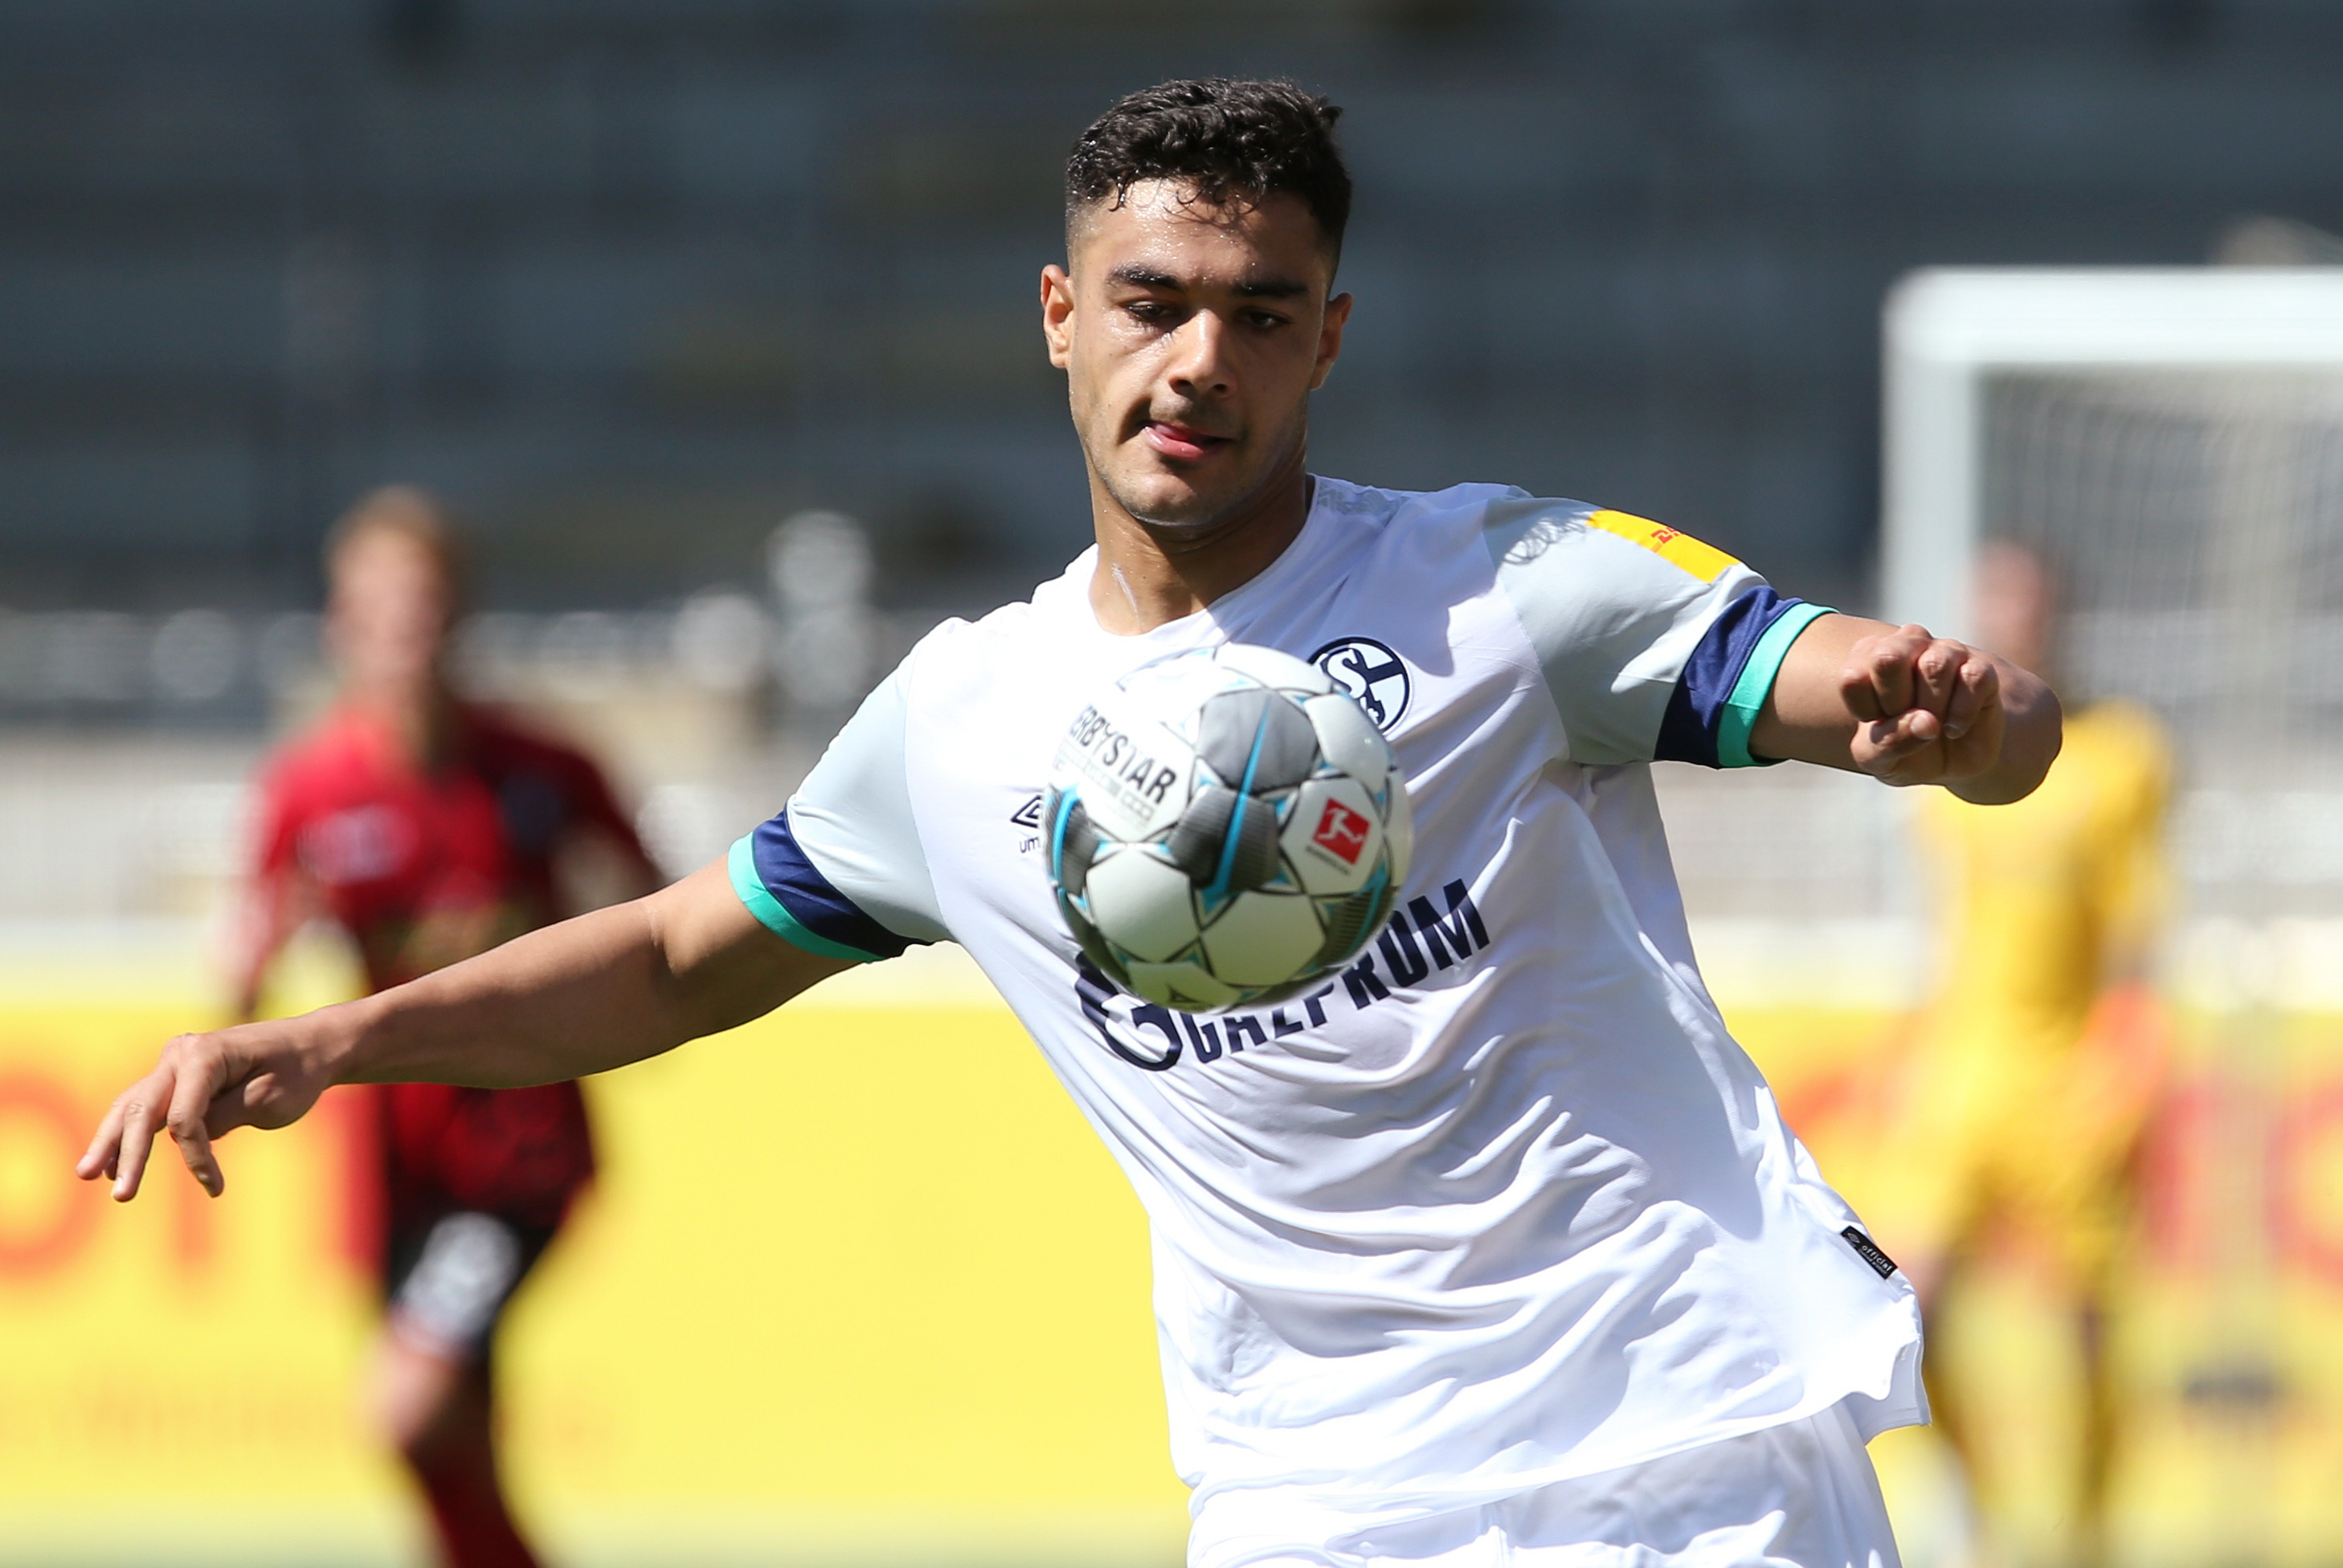 Newcastle United eyeing a fresh move for Ozan Kabak who is seen in the photo